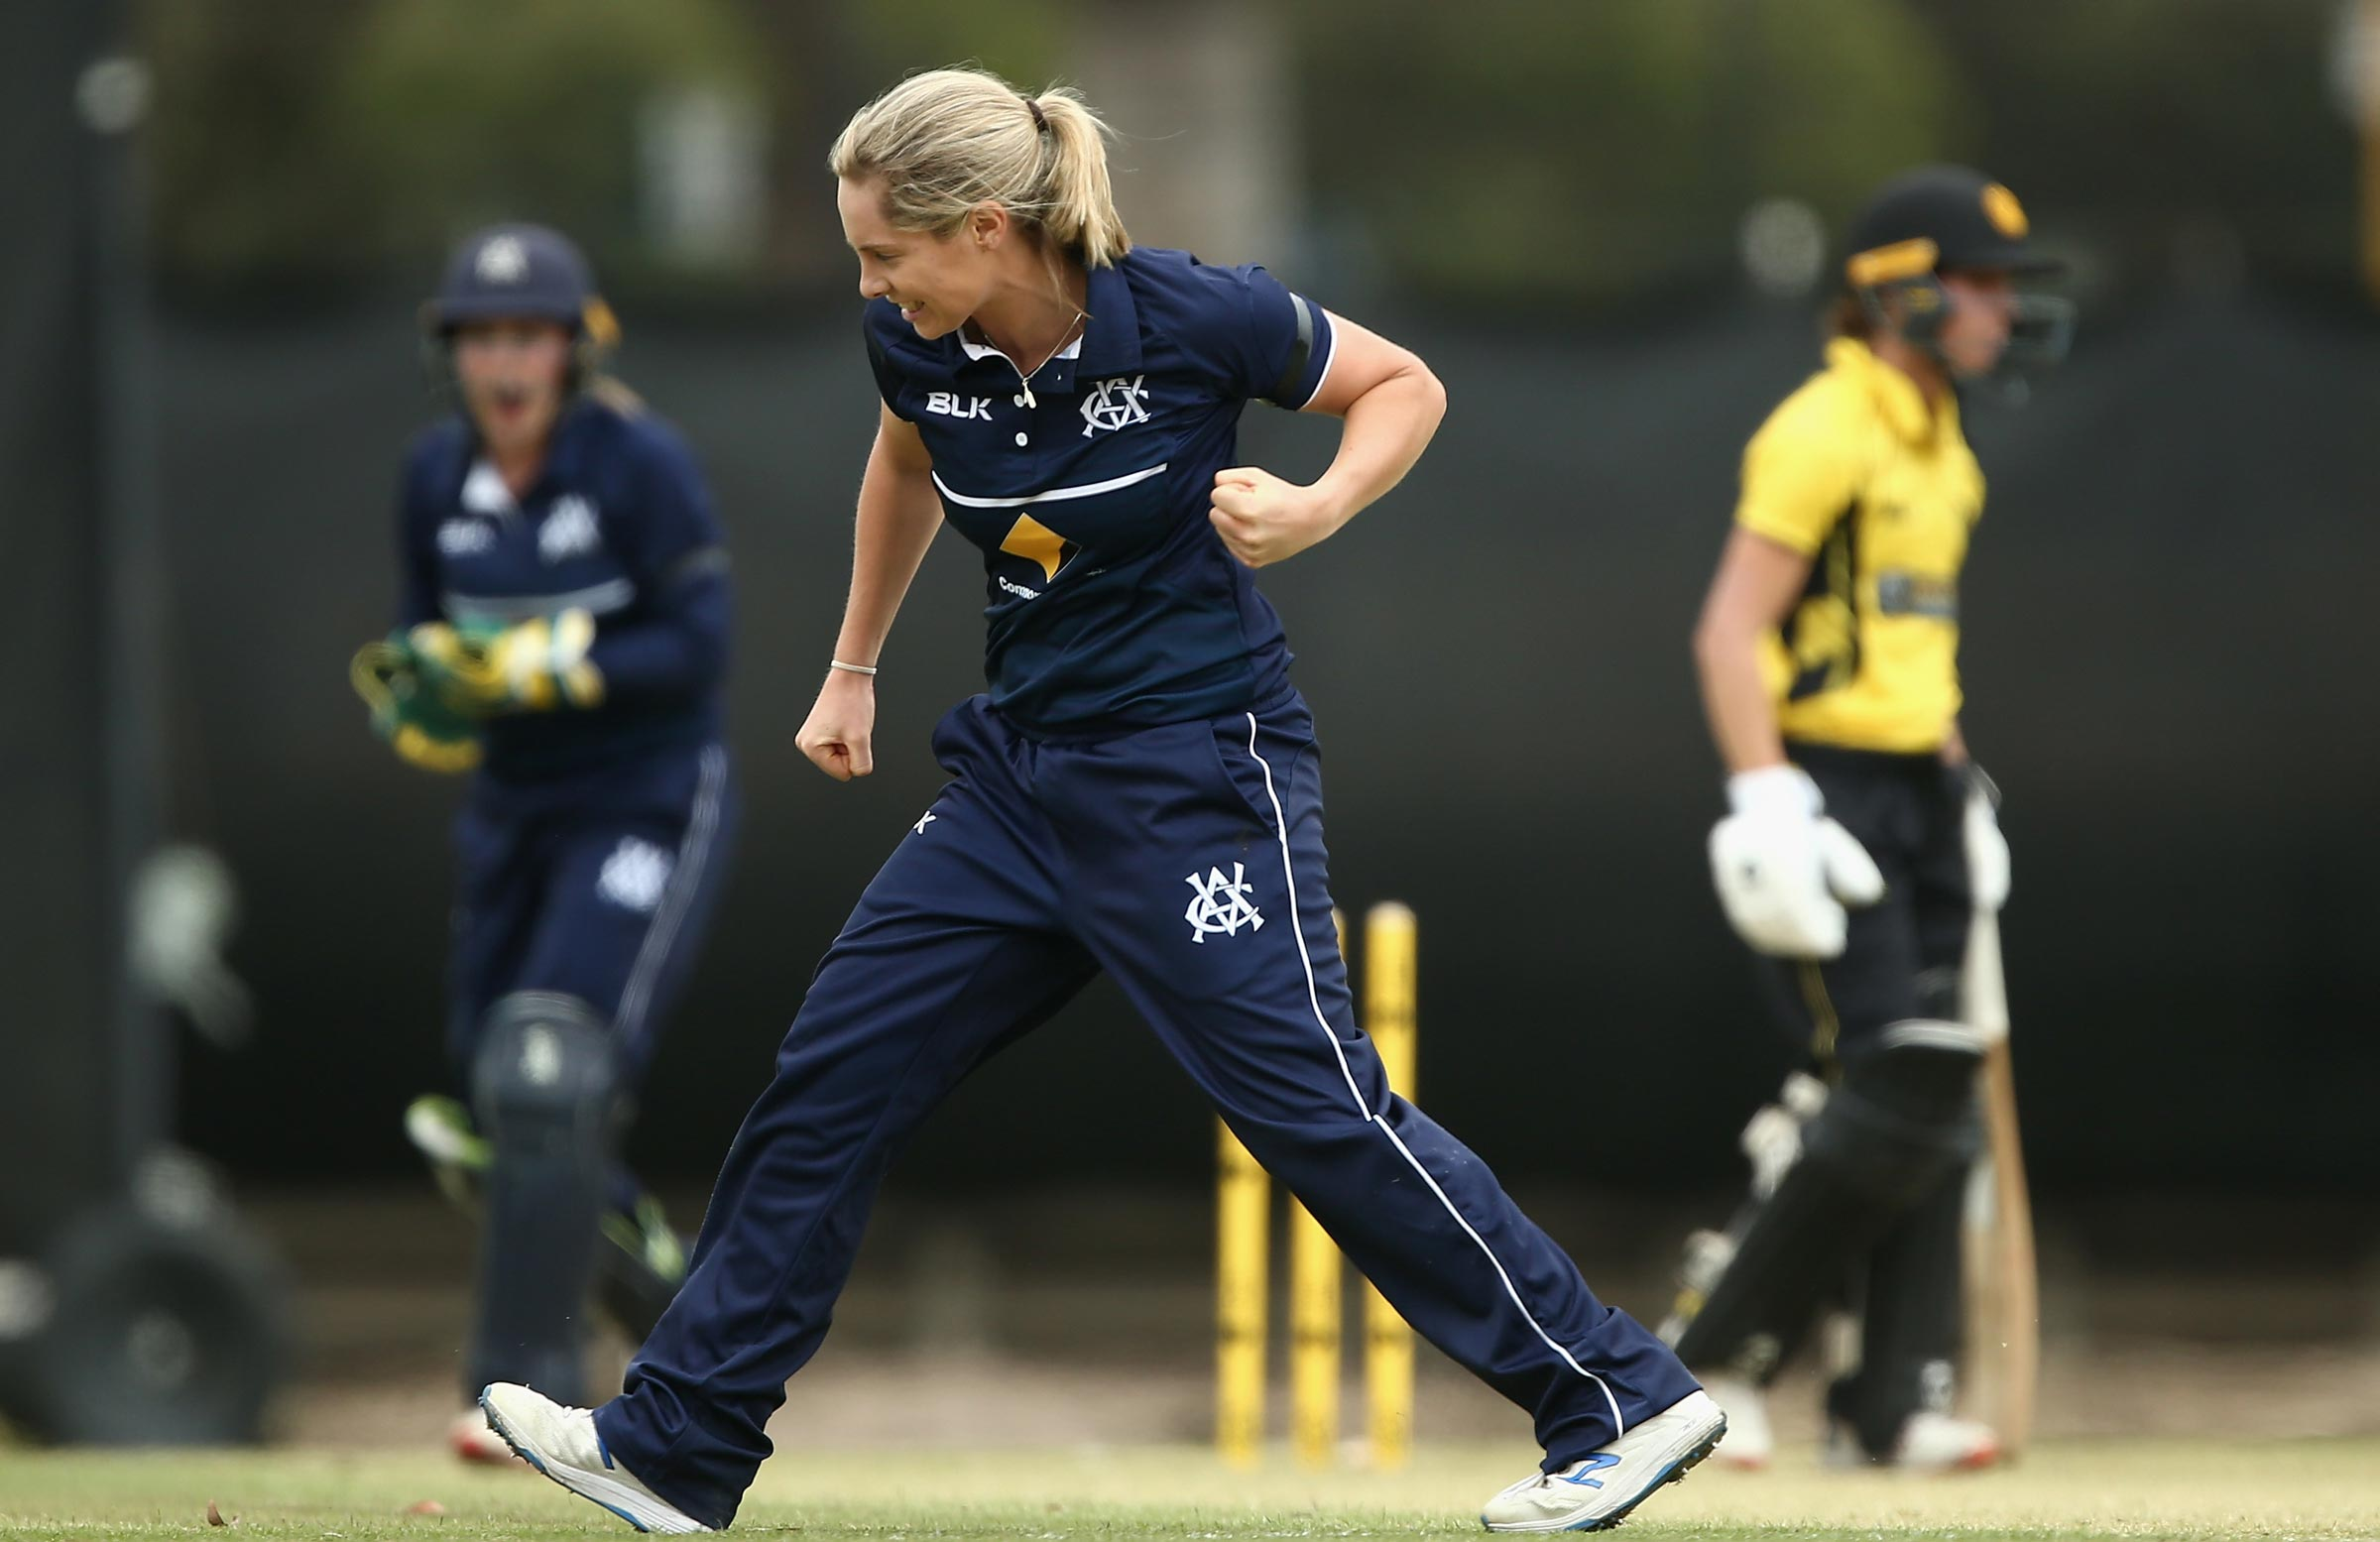 Sophie Molineux has become a fixture in the Australian team // AAP